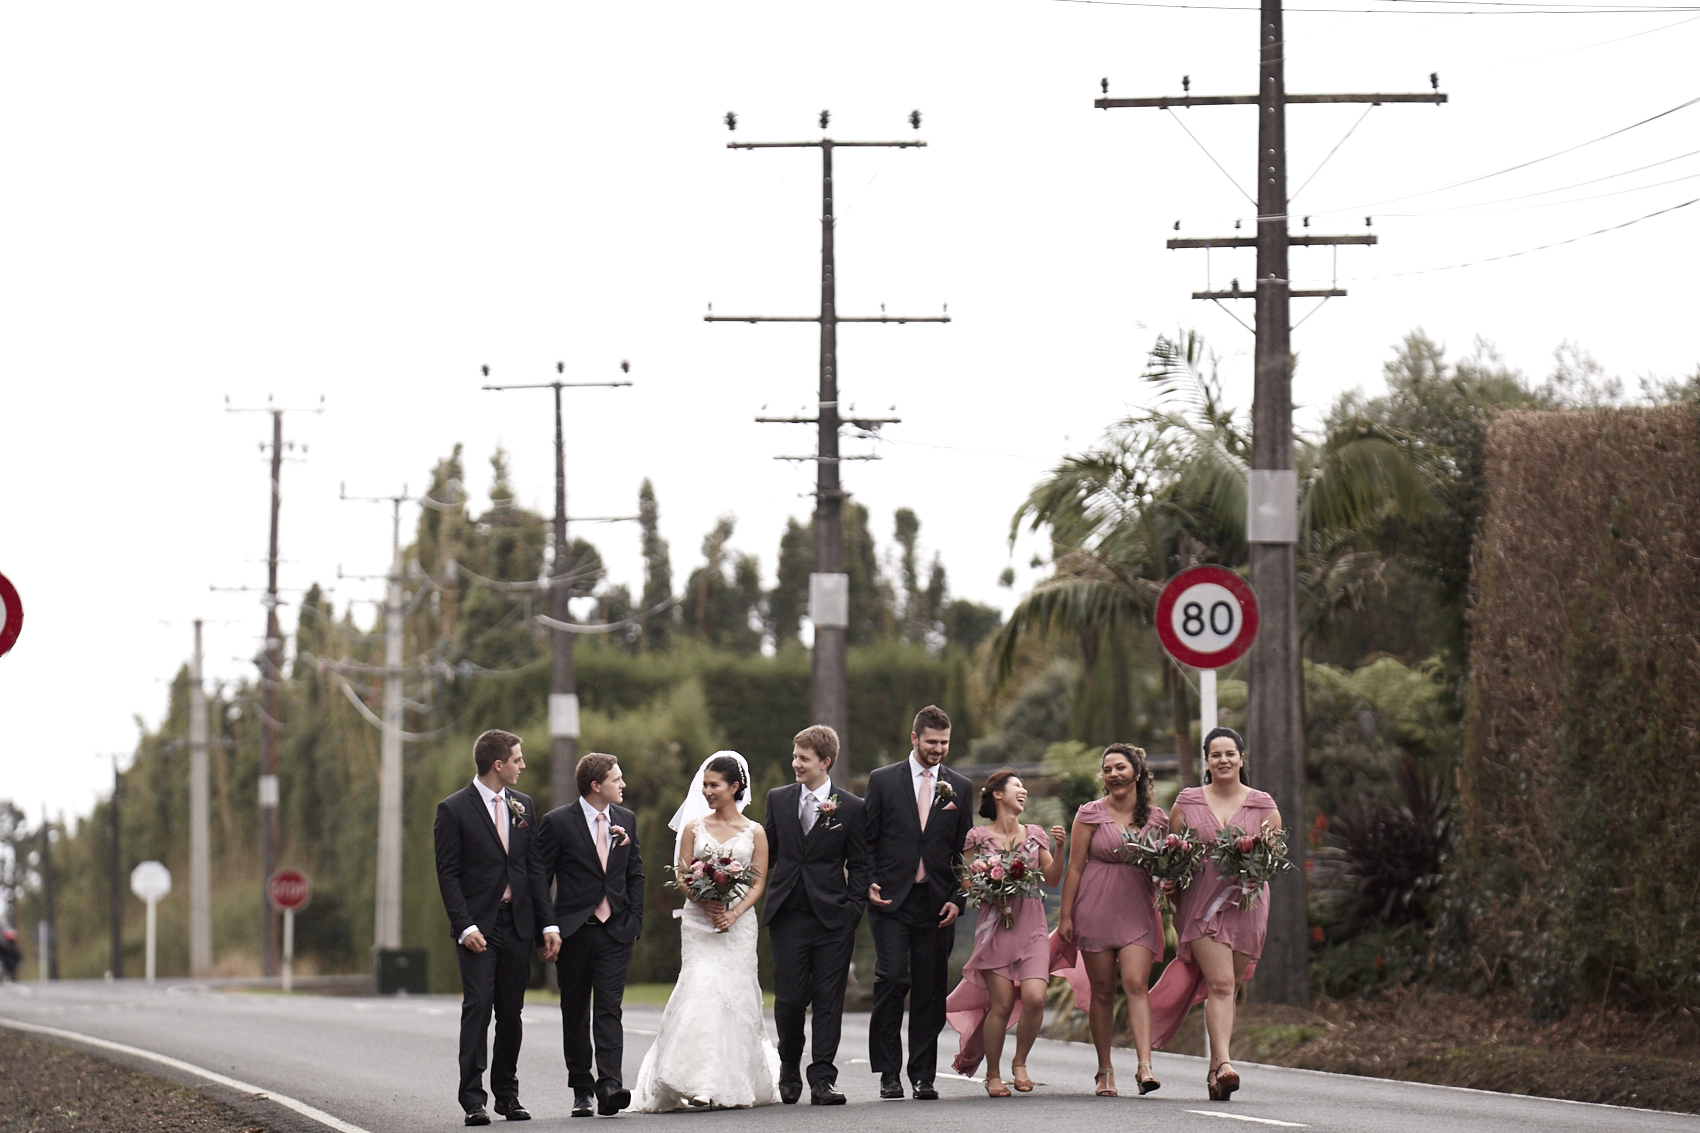 Bridal party walking down road